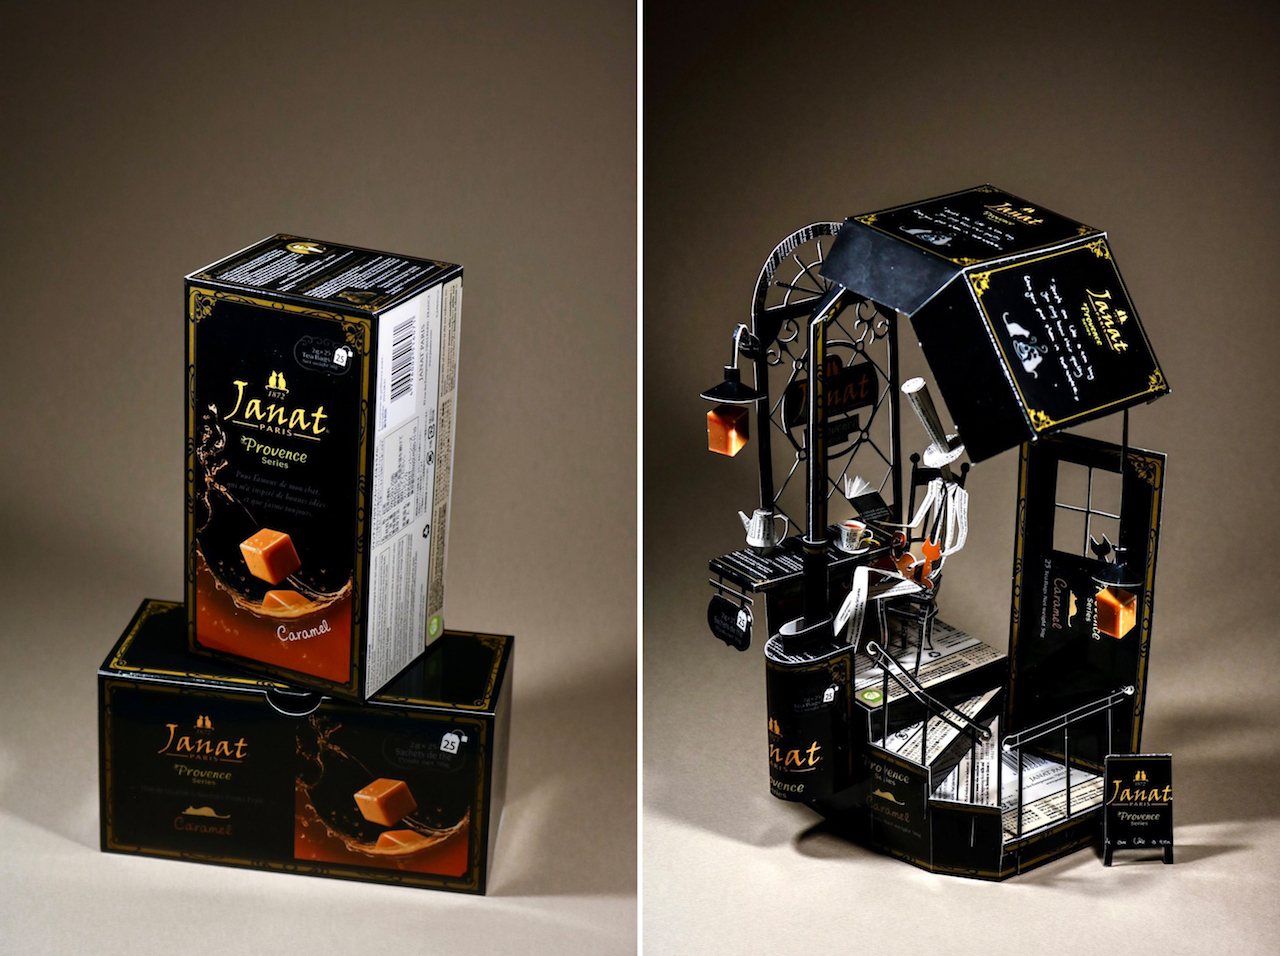 Product Packaging Turned Into Art - 8